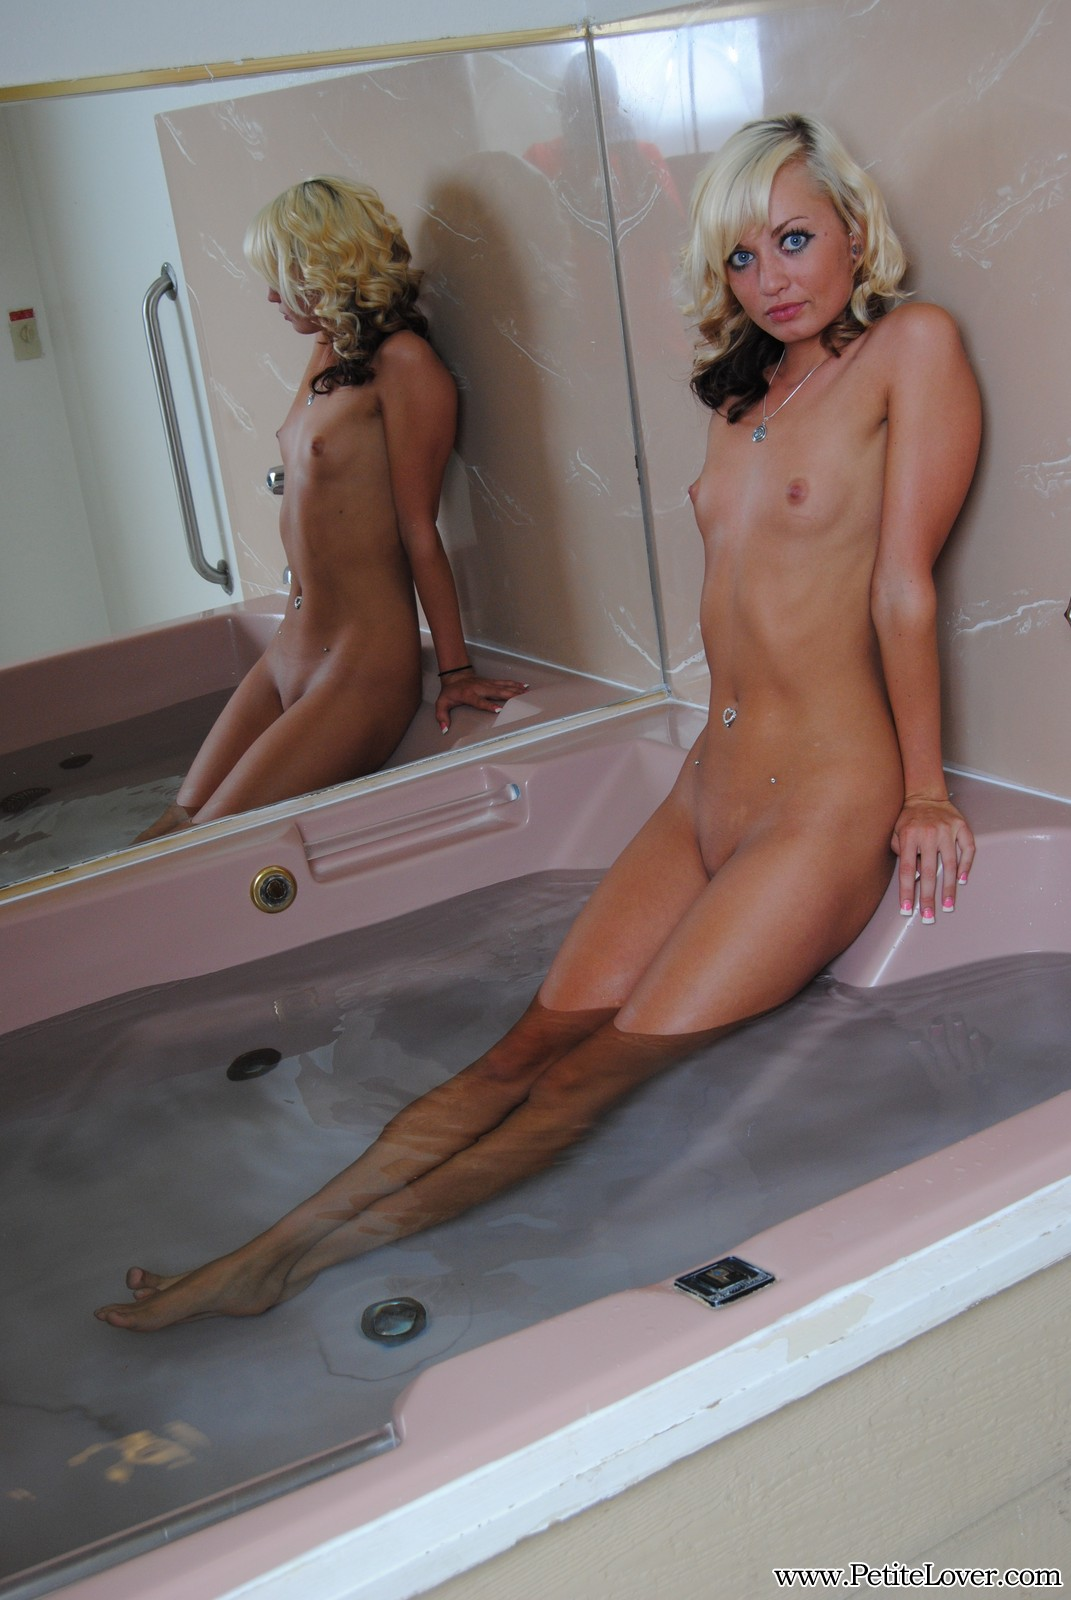 Petite Blonde Tiff In The Jacuzzi Naked - Picture 6